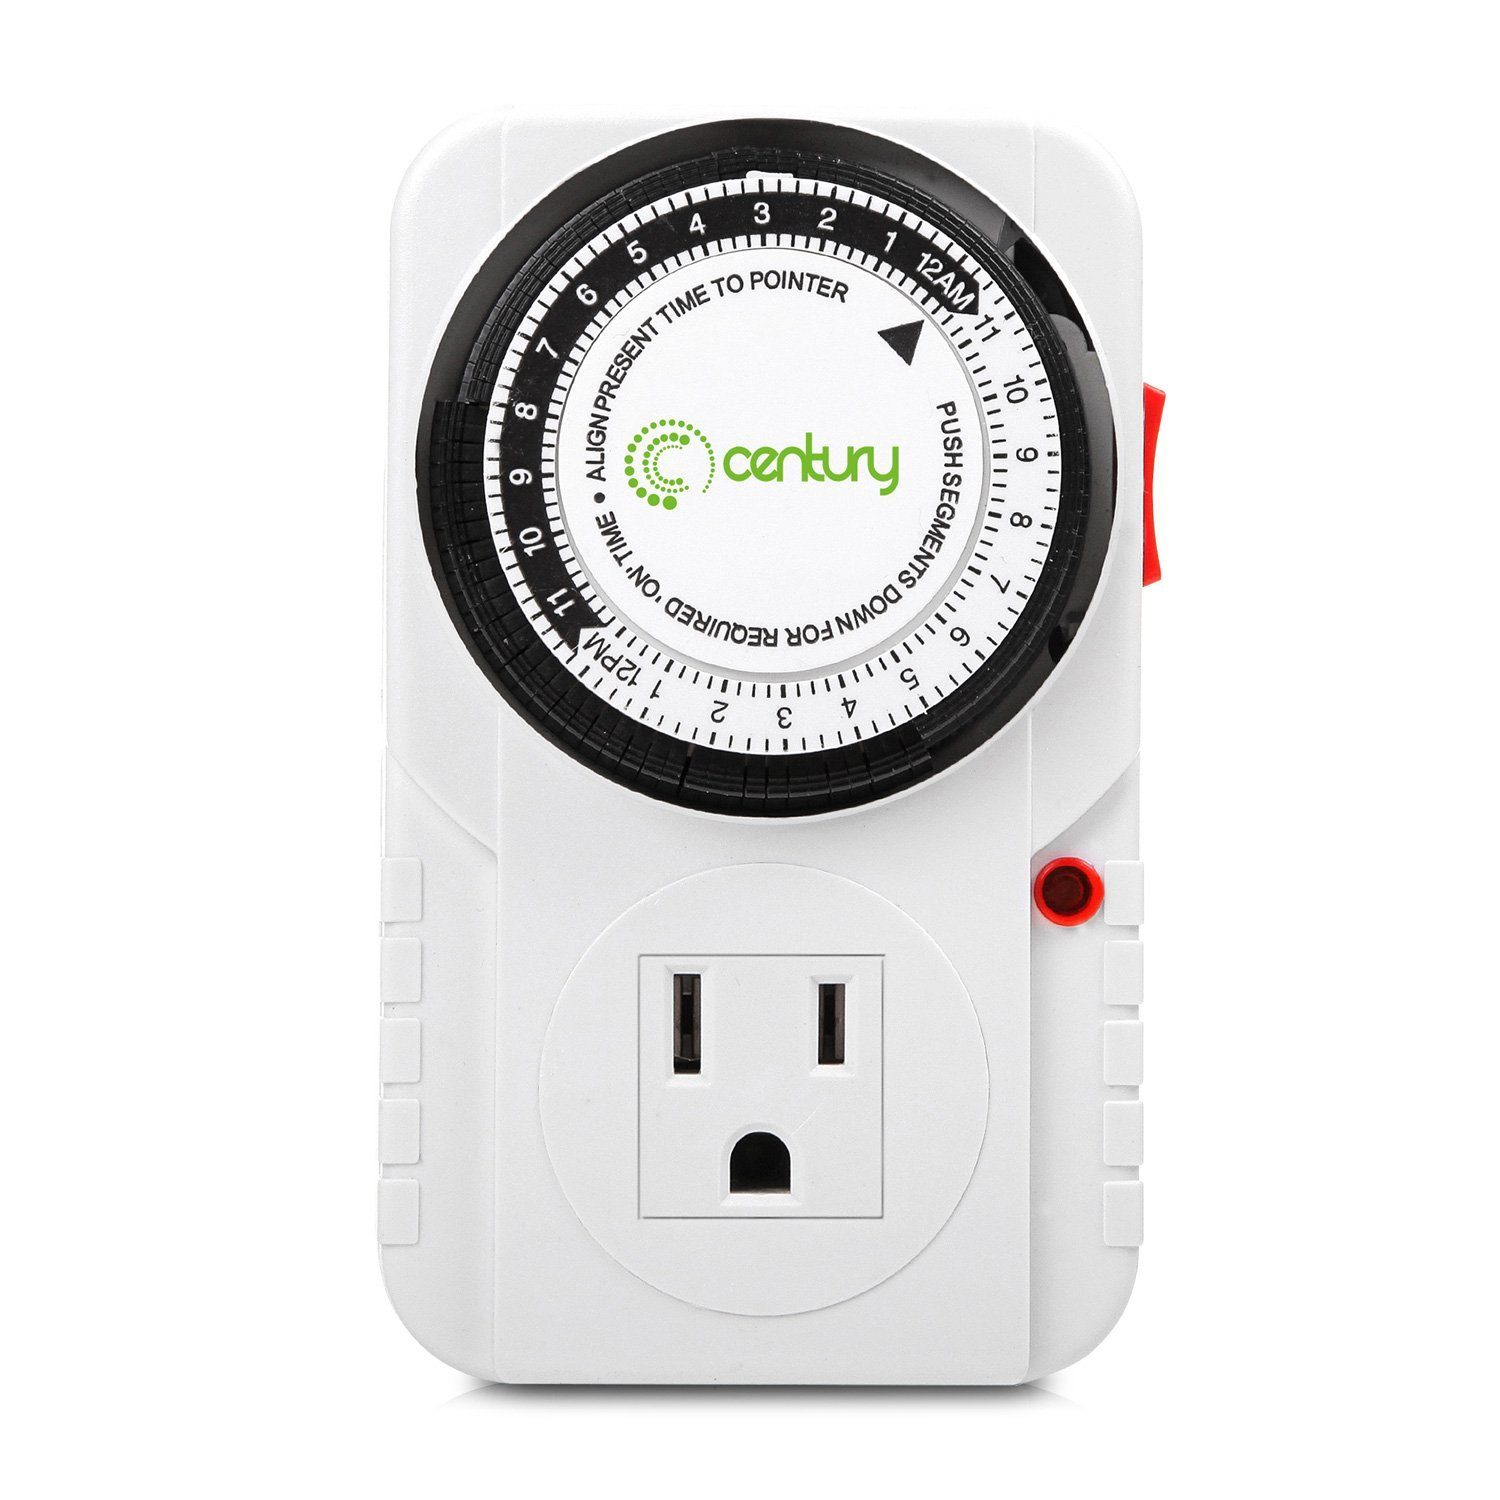 Century 24 Hour Plug-in Mechanical Timer Grounded Outlet Indoor Heavy Duty